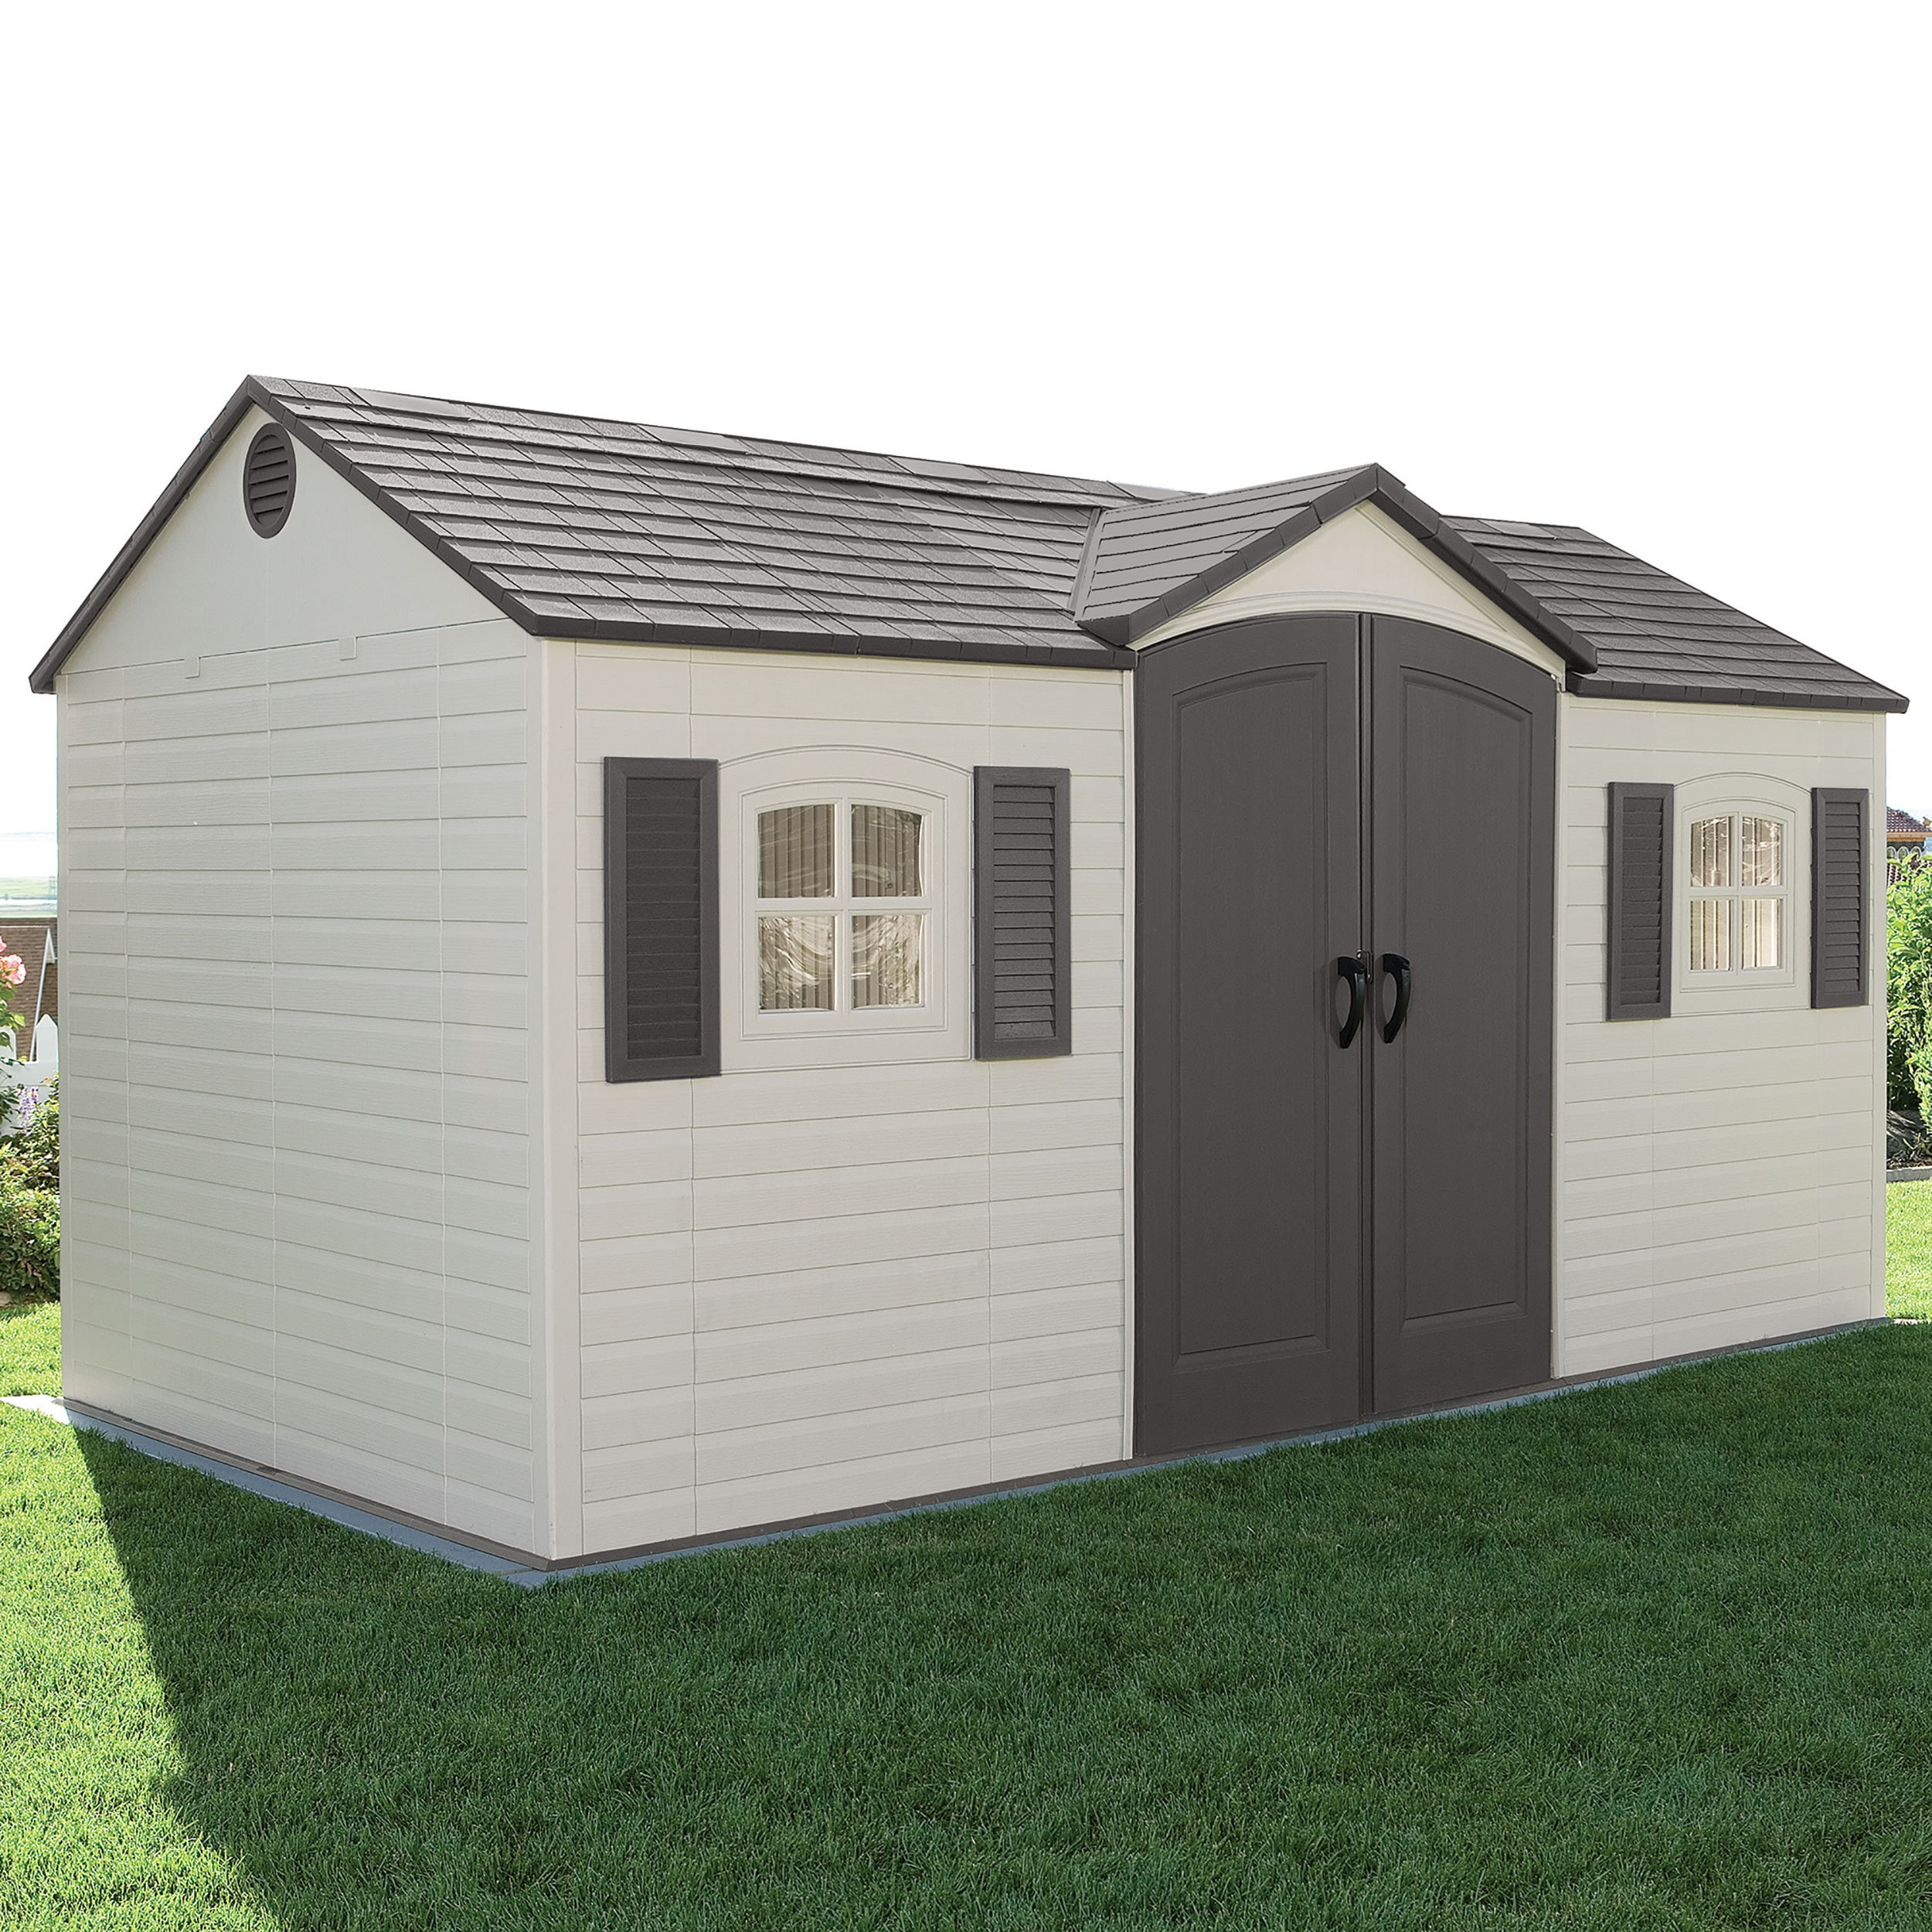 cabins of cabin x less sauerland w product for b quality wide ireland log sheds range